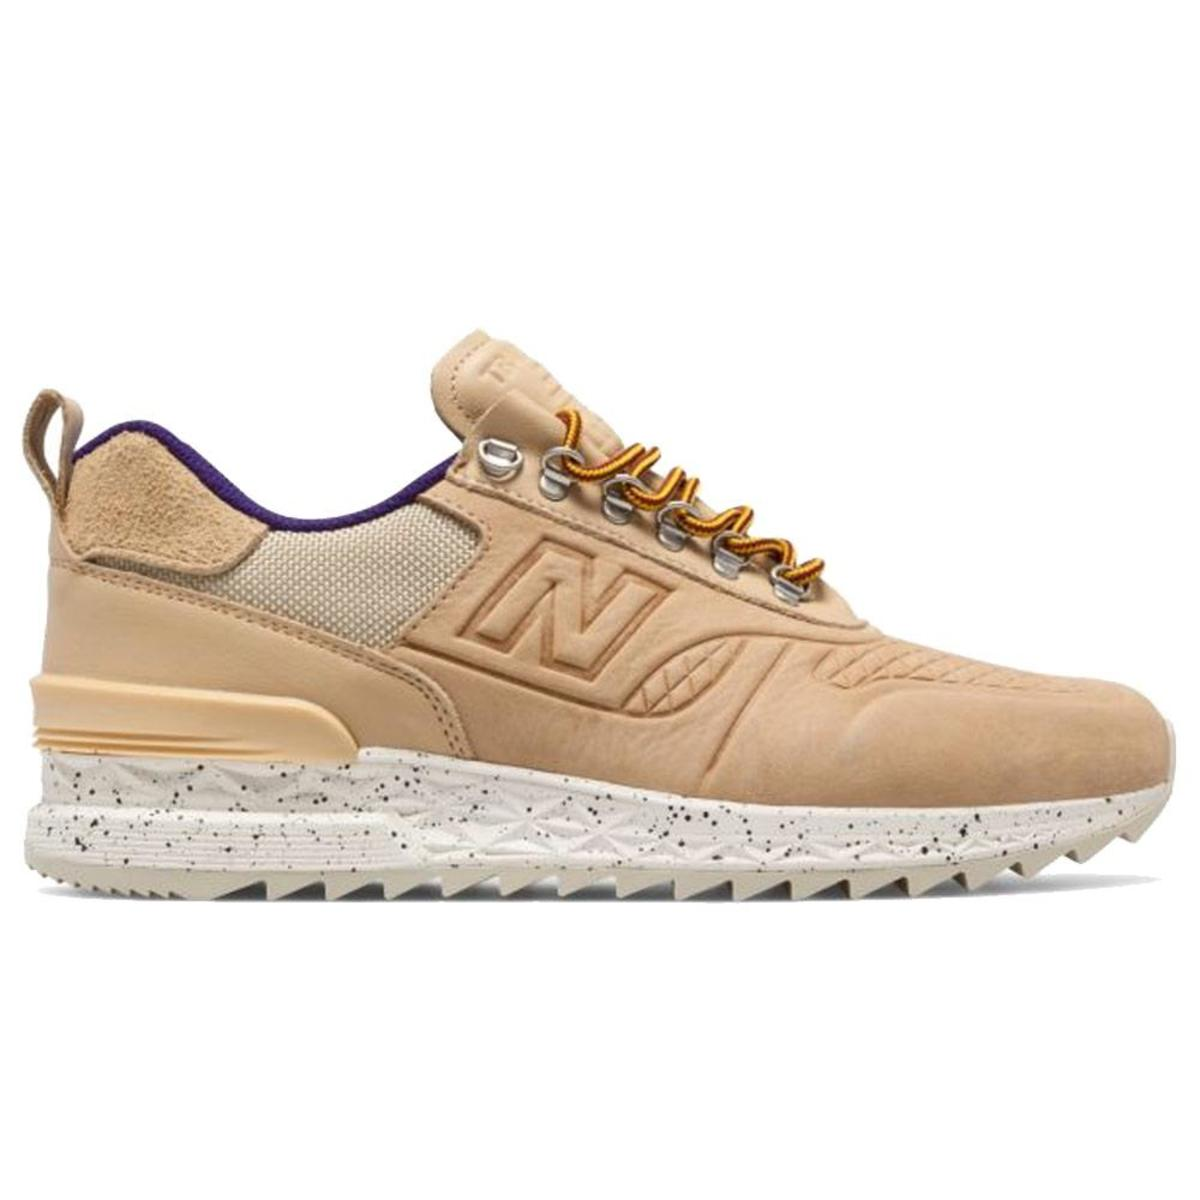 New Balance Trailbuster All Terrain Sneakers